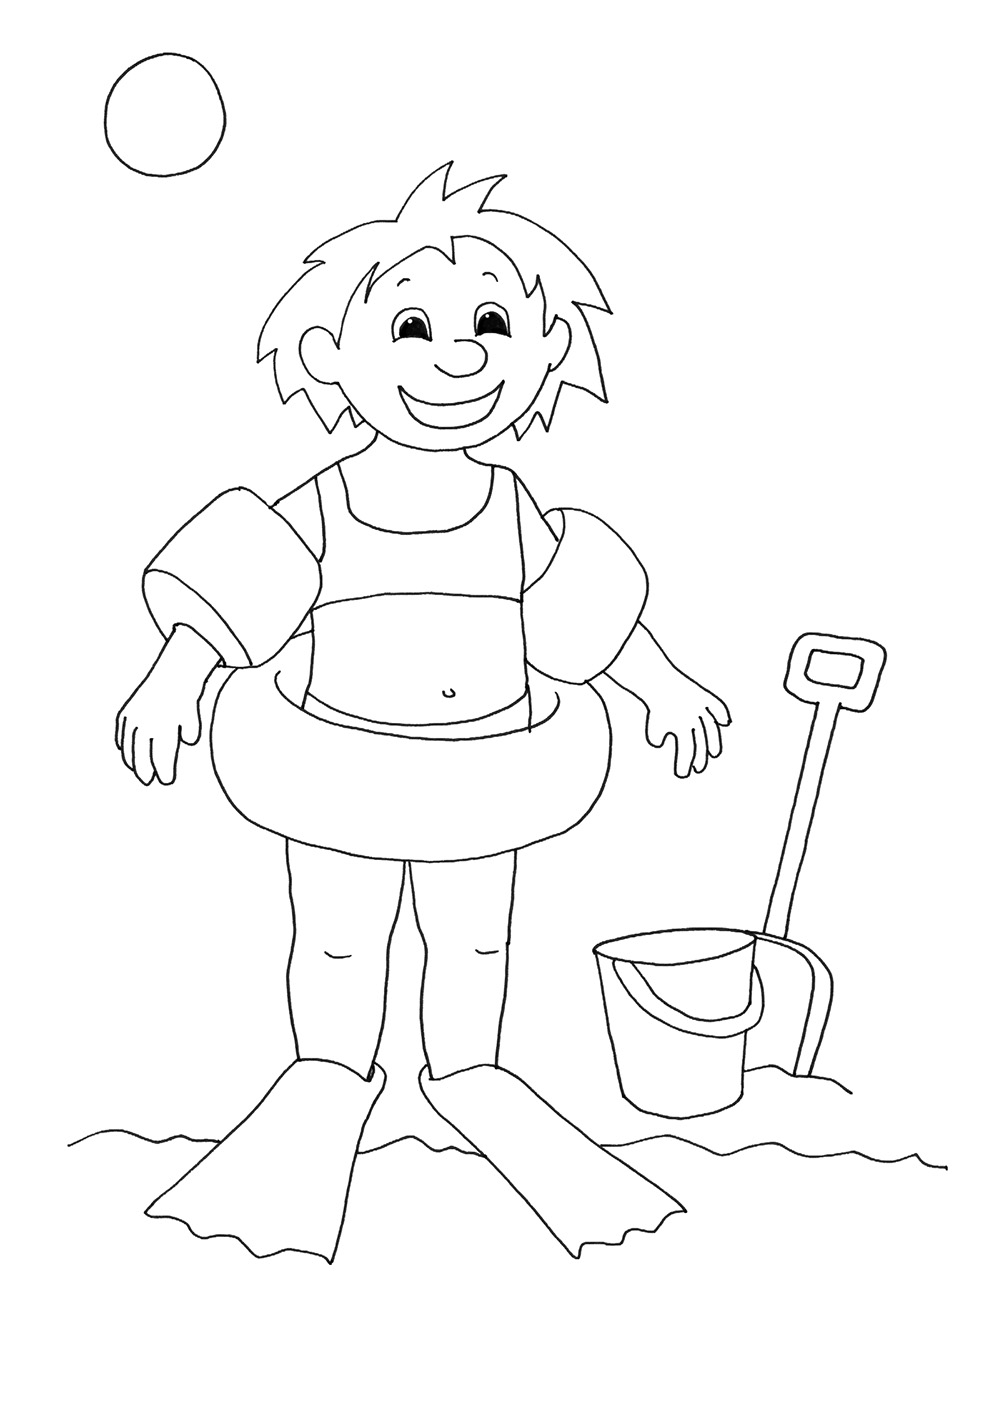 beach girl coloring pages preschool beach coloring pages coloring home girl pages beach coloring